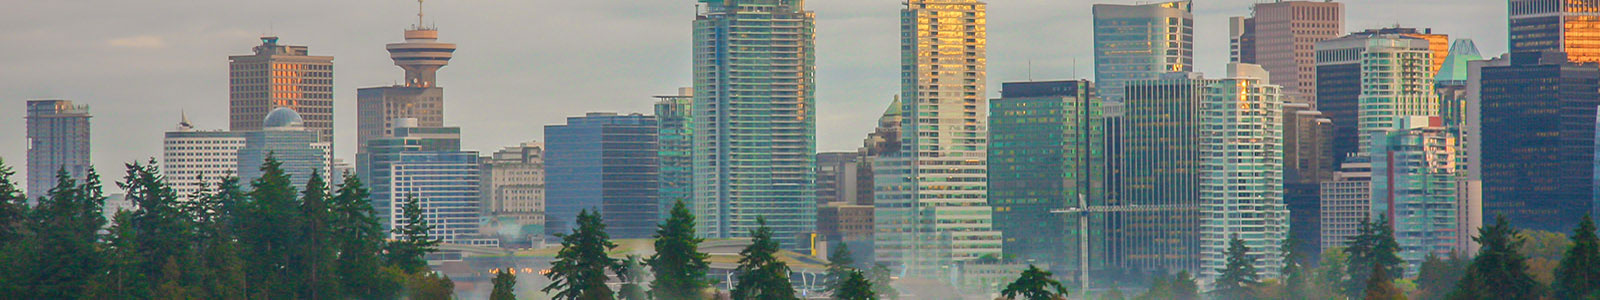 Vancouver's glass buildings